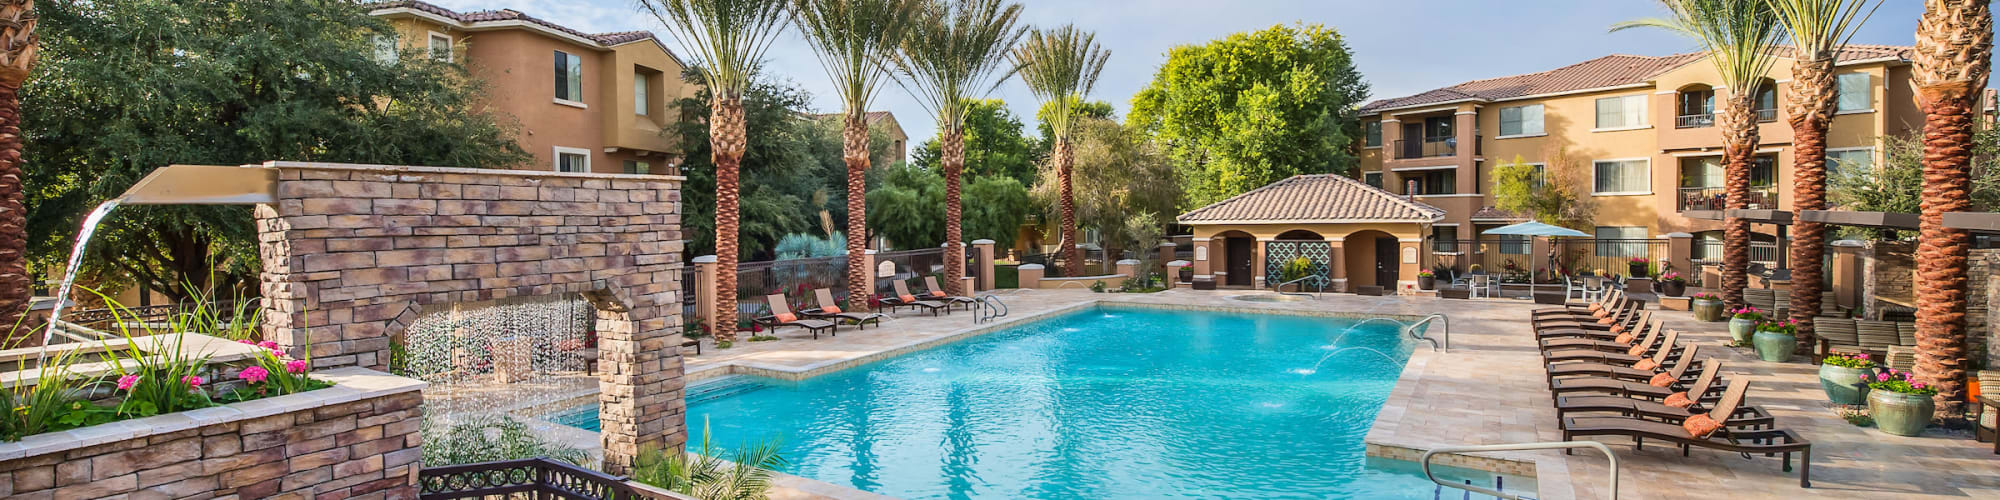 Schedule a tour of Stone Oaks in Chandler, Arizona